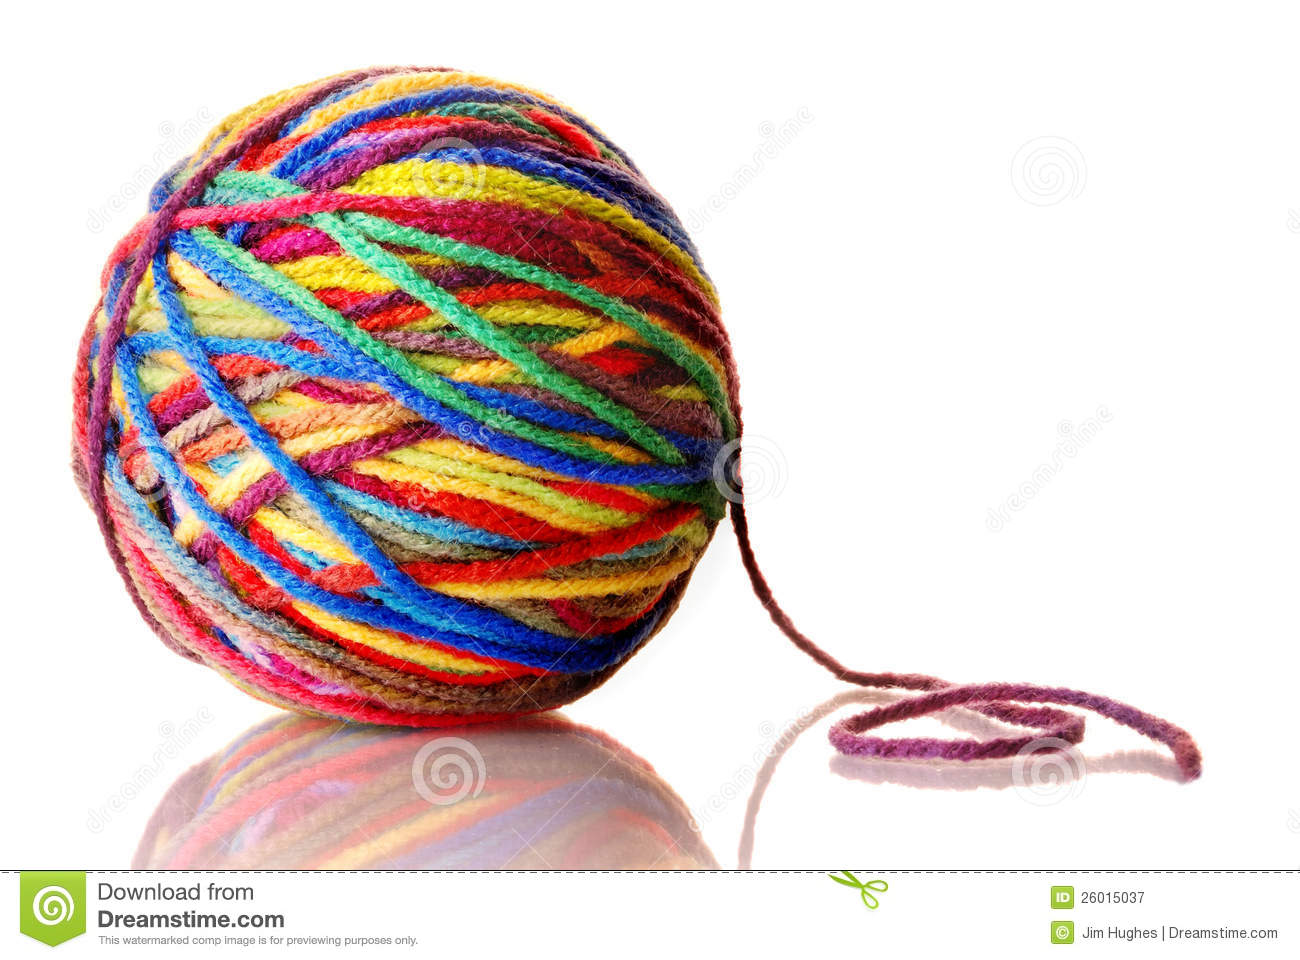 Royalty Free Stock Photography: Ball of yarn. Image: 26015037